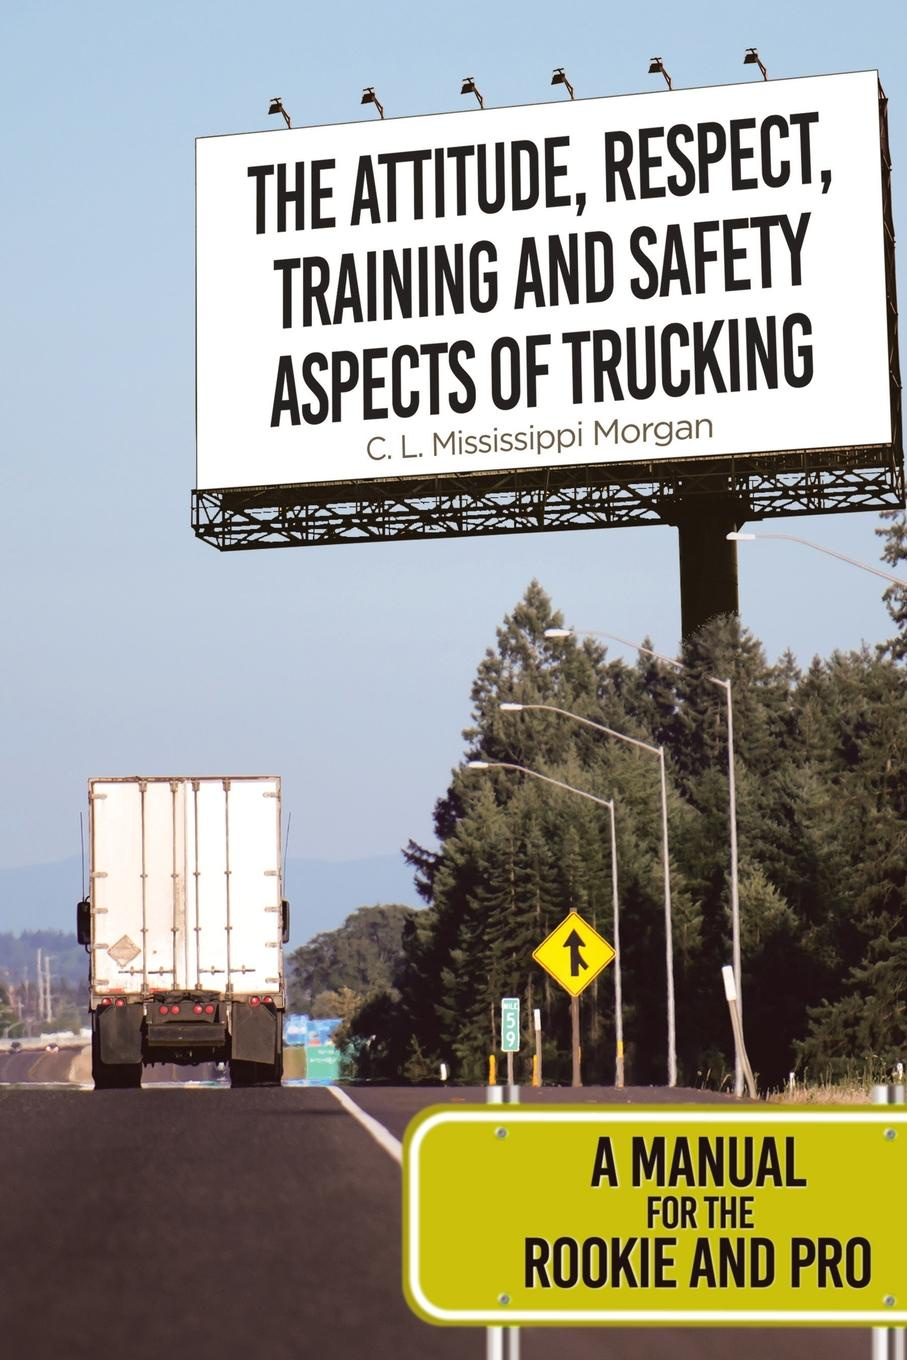 C. L. Mississippi Morgan The Attitude, Respect, Training and Safety Aspects of Trucking. A Manual for the Rookie and Pro